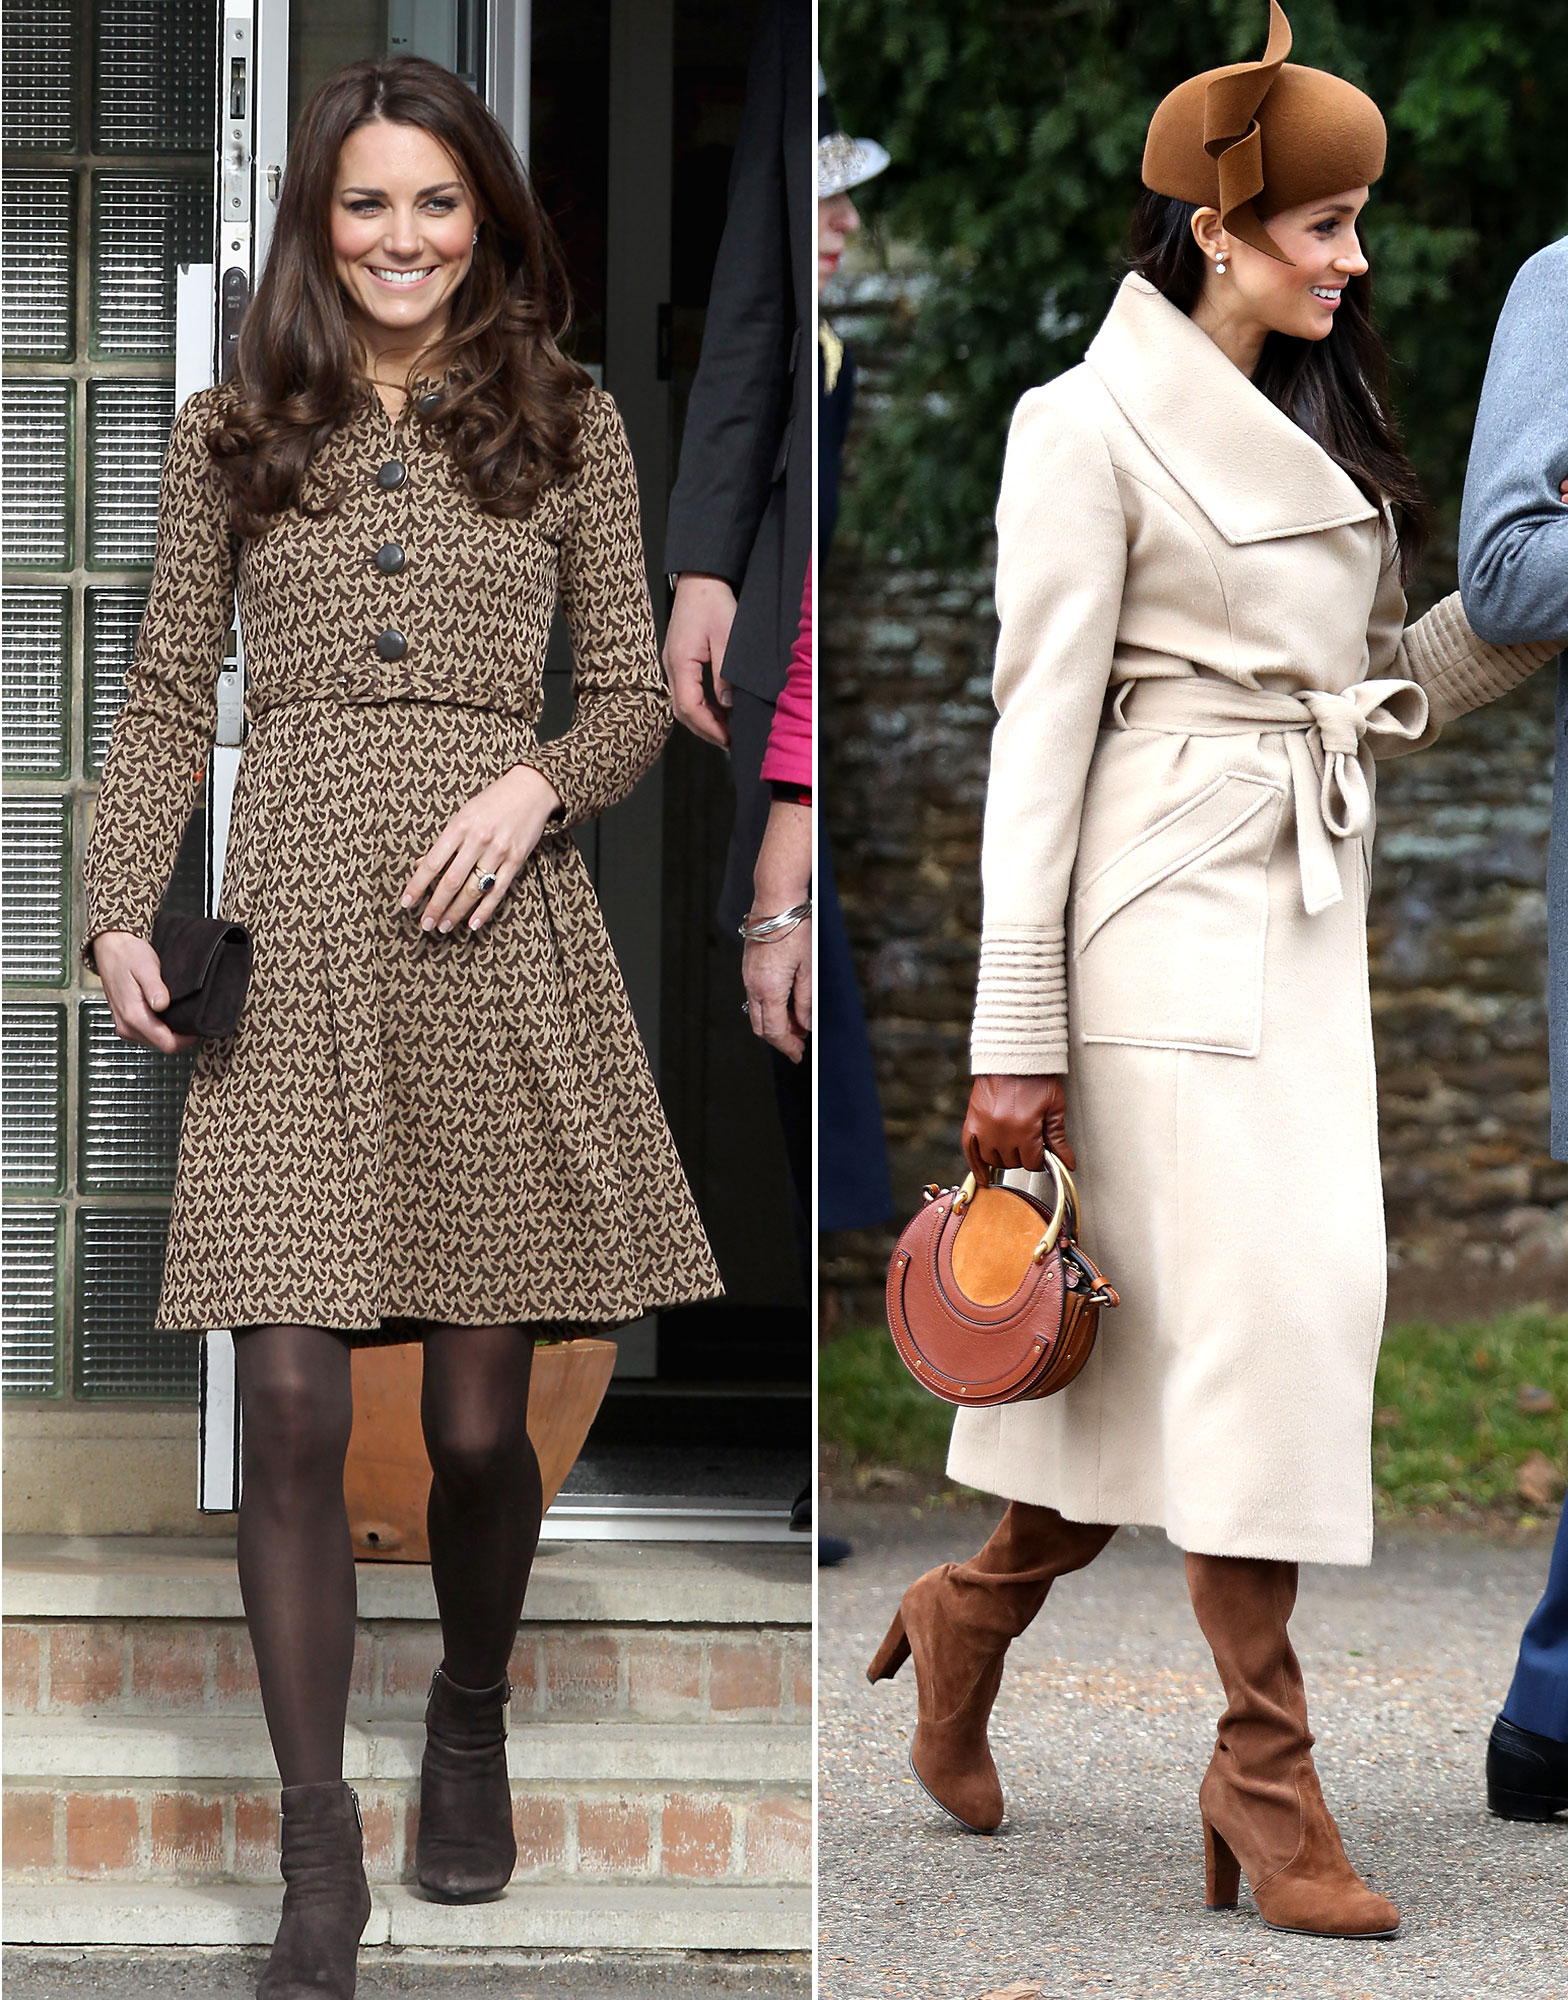 The Royal Style Secret Meghan Markle Stole From Kate Middleton - Offering two different takes on the monochrome trend, Kate and Meghan mixed prints and shades in their brown ensembles. Back in February 2012, the Duchess of Cambridge sported a patterned Orla Kiely coat dress with color-coordinated tights and boots, while the Duchess of Sussex celebrated her first royal Christmas in December 2017 in a multi-hued ensemble that consisted of a sandy Sentaler wrap coat, cognac Stuart Weitzman over-the-knee boots and a custom Philip Treacy fascinator.